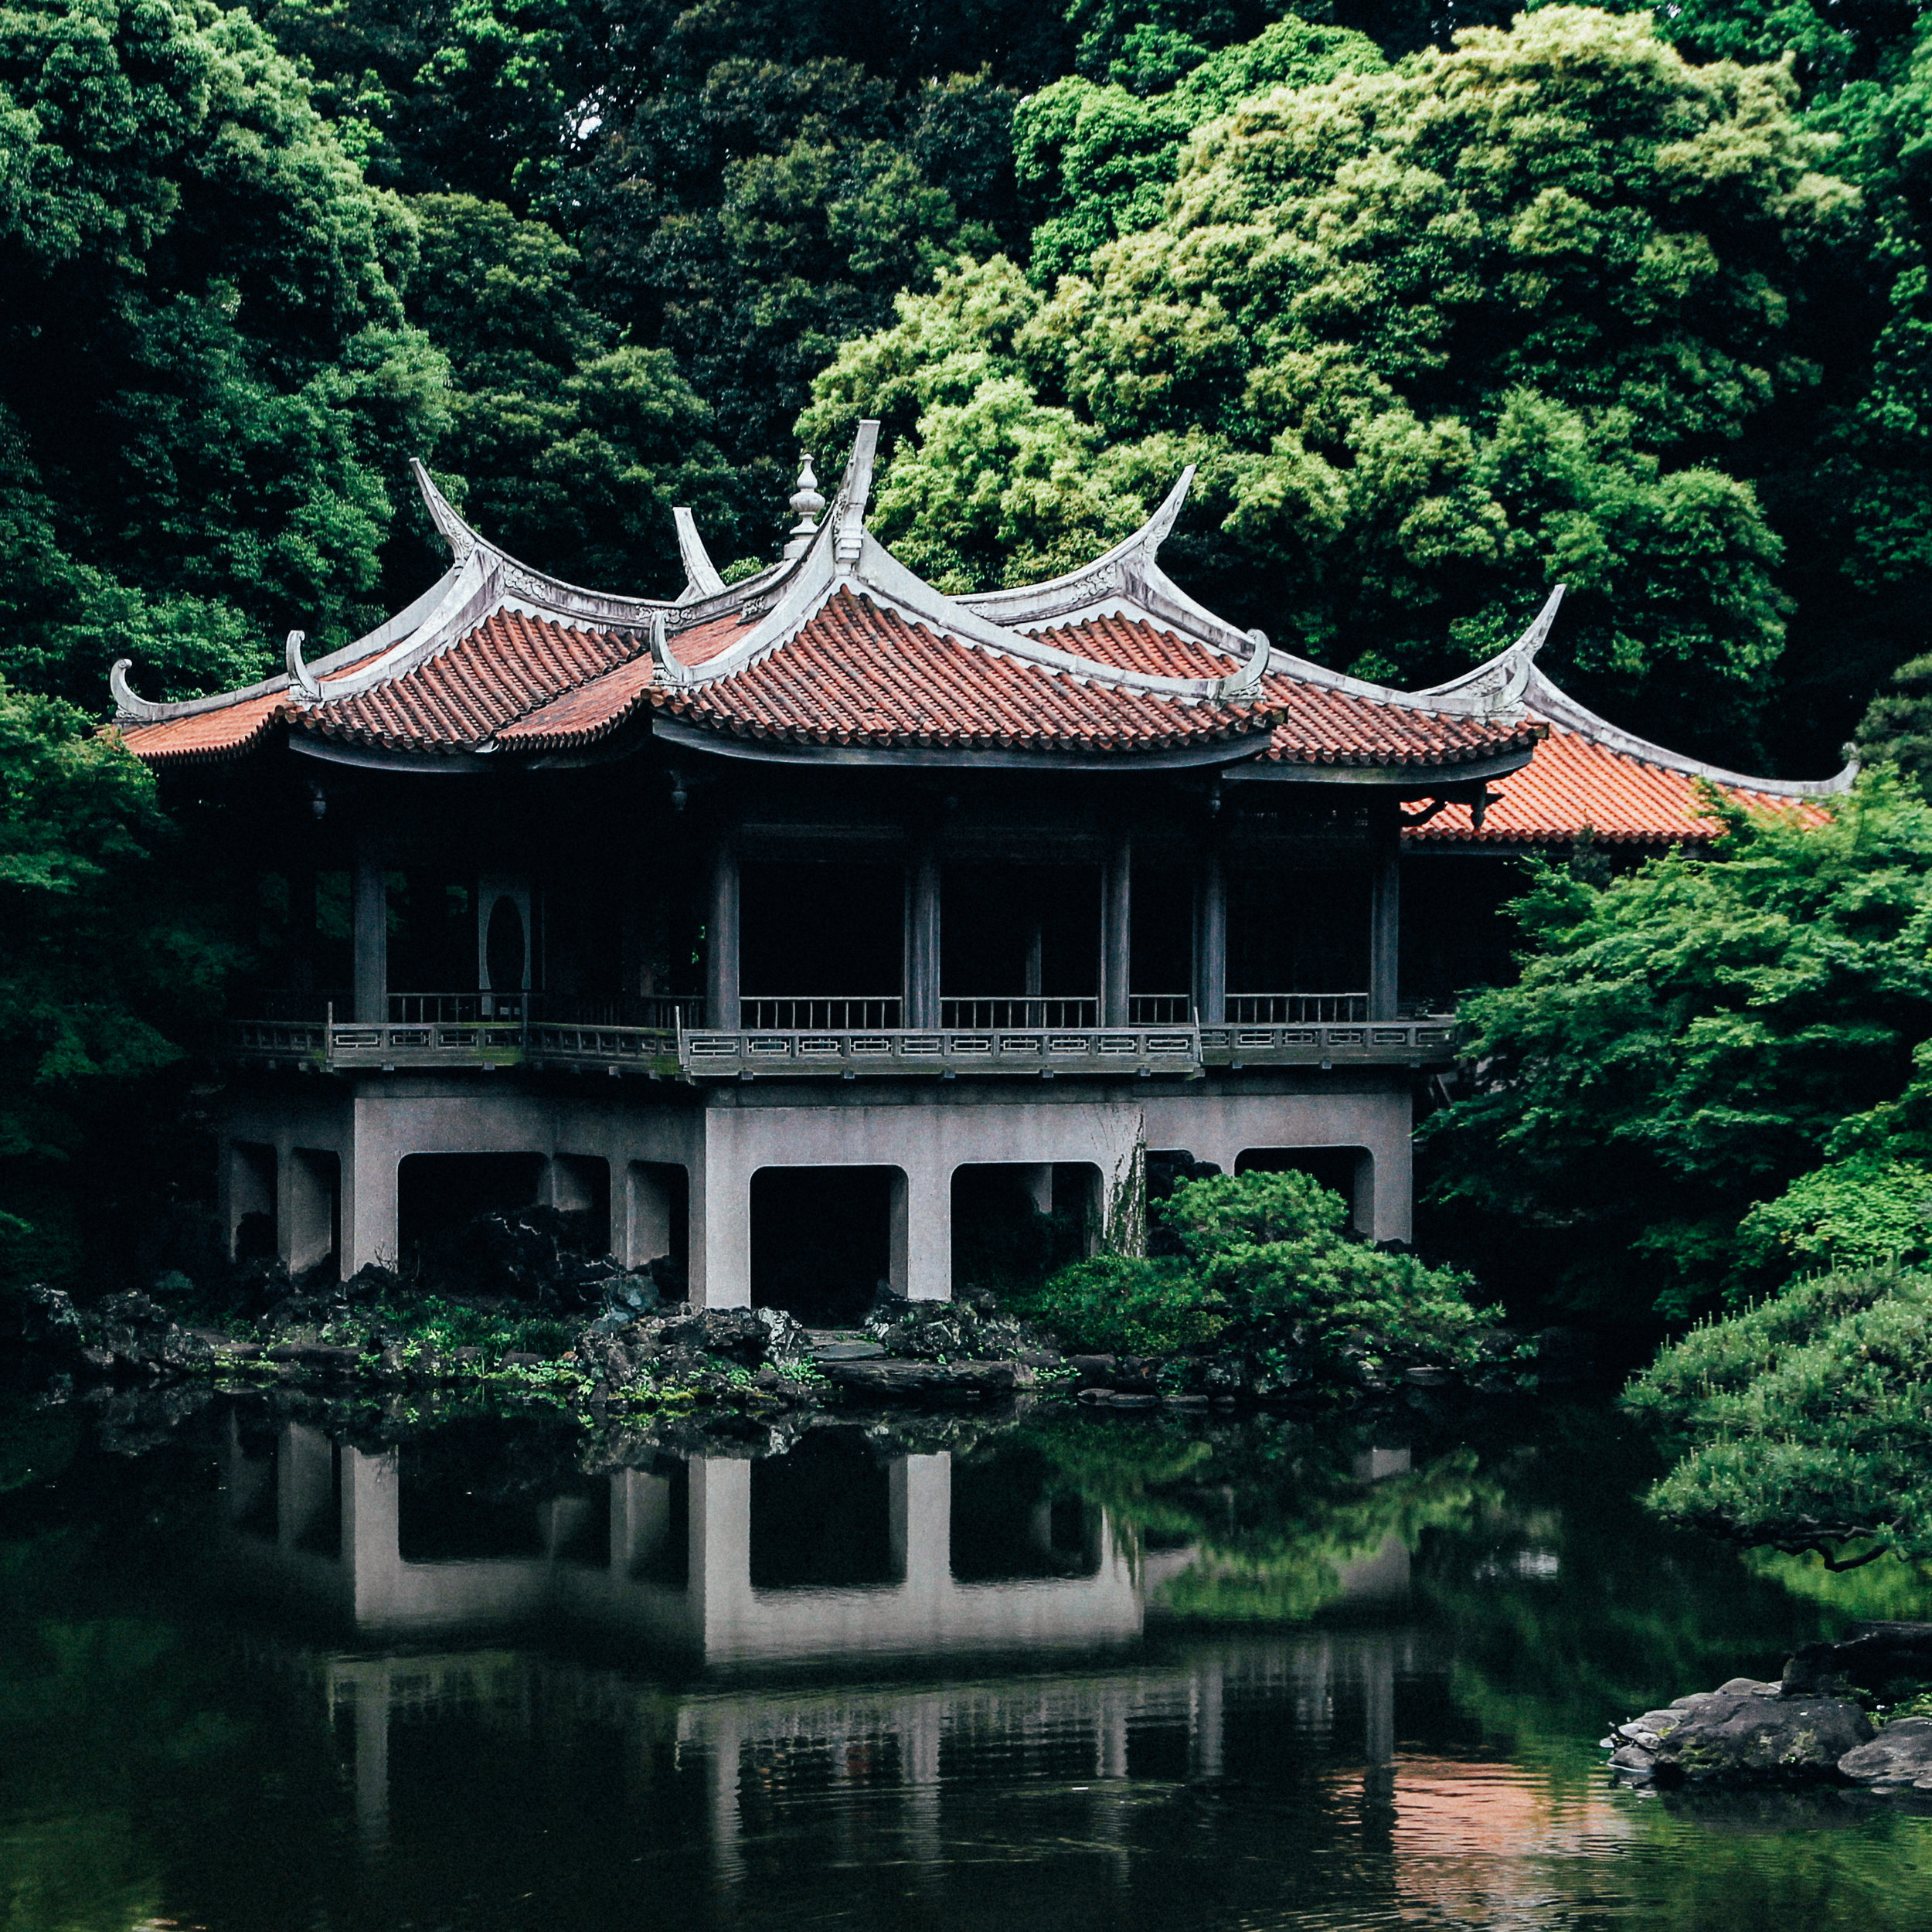 CHINA - Whether it be the Great Wall, Giant Pandas or the Emperor's Palace, China has something for everyone. There are many amazing tour groups that can help make your China experience one you will never forget.